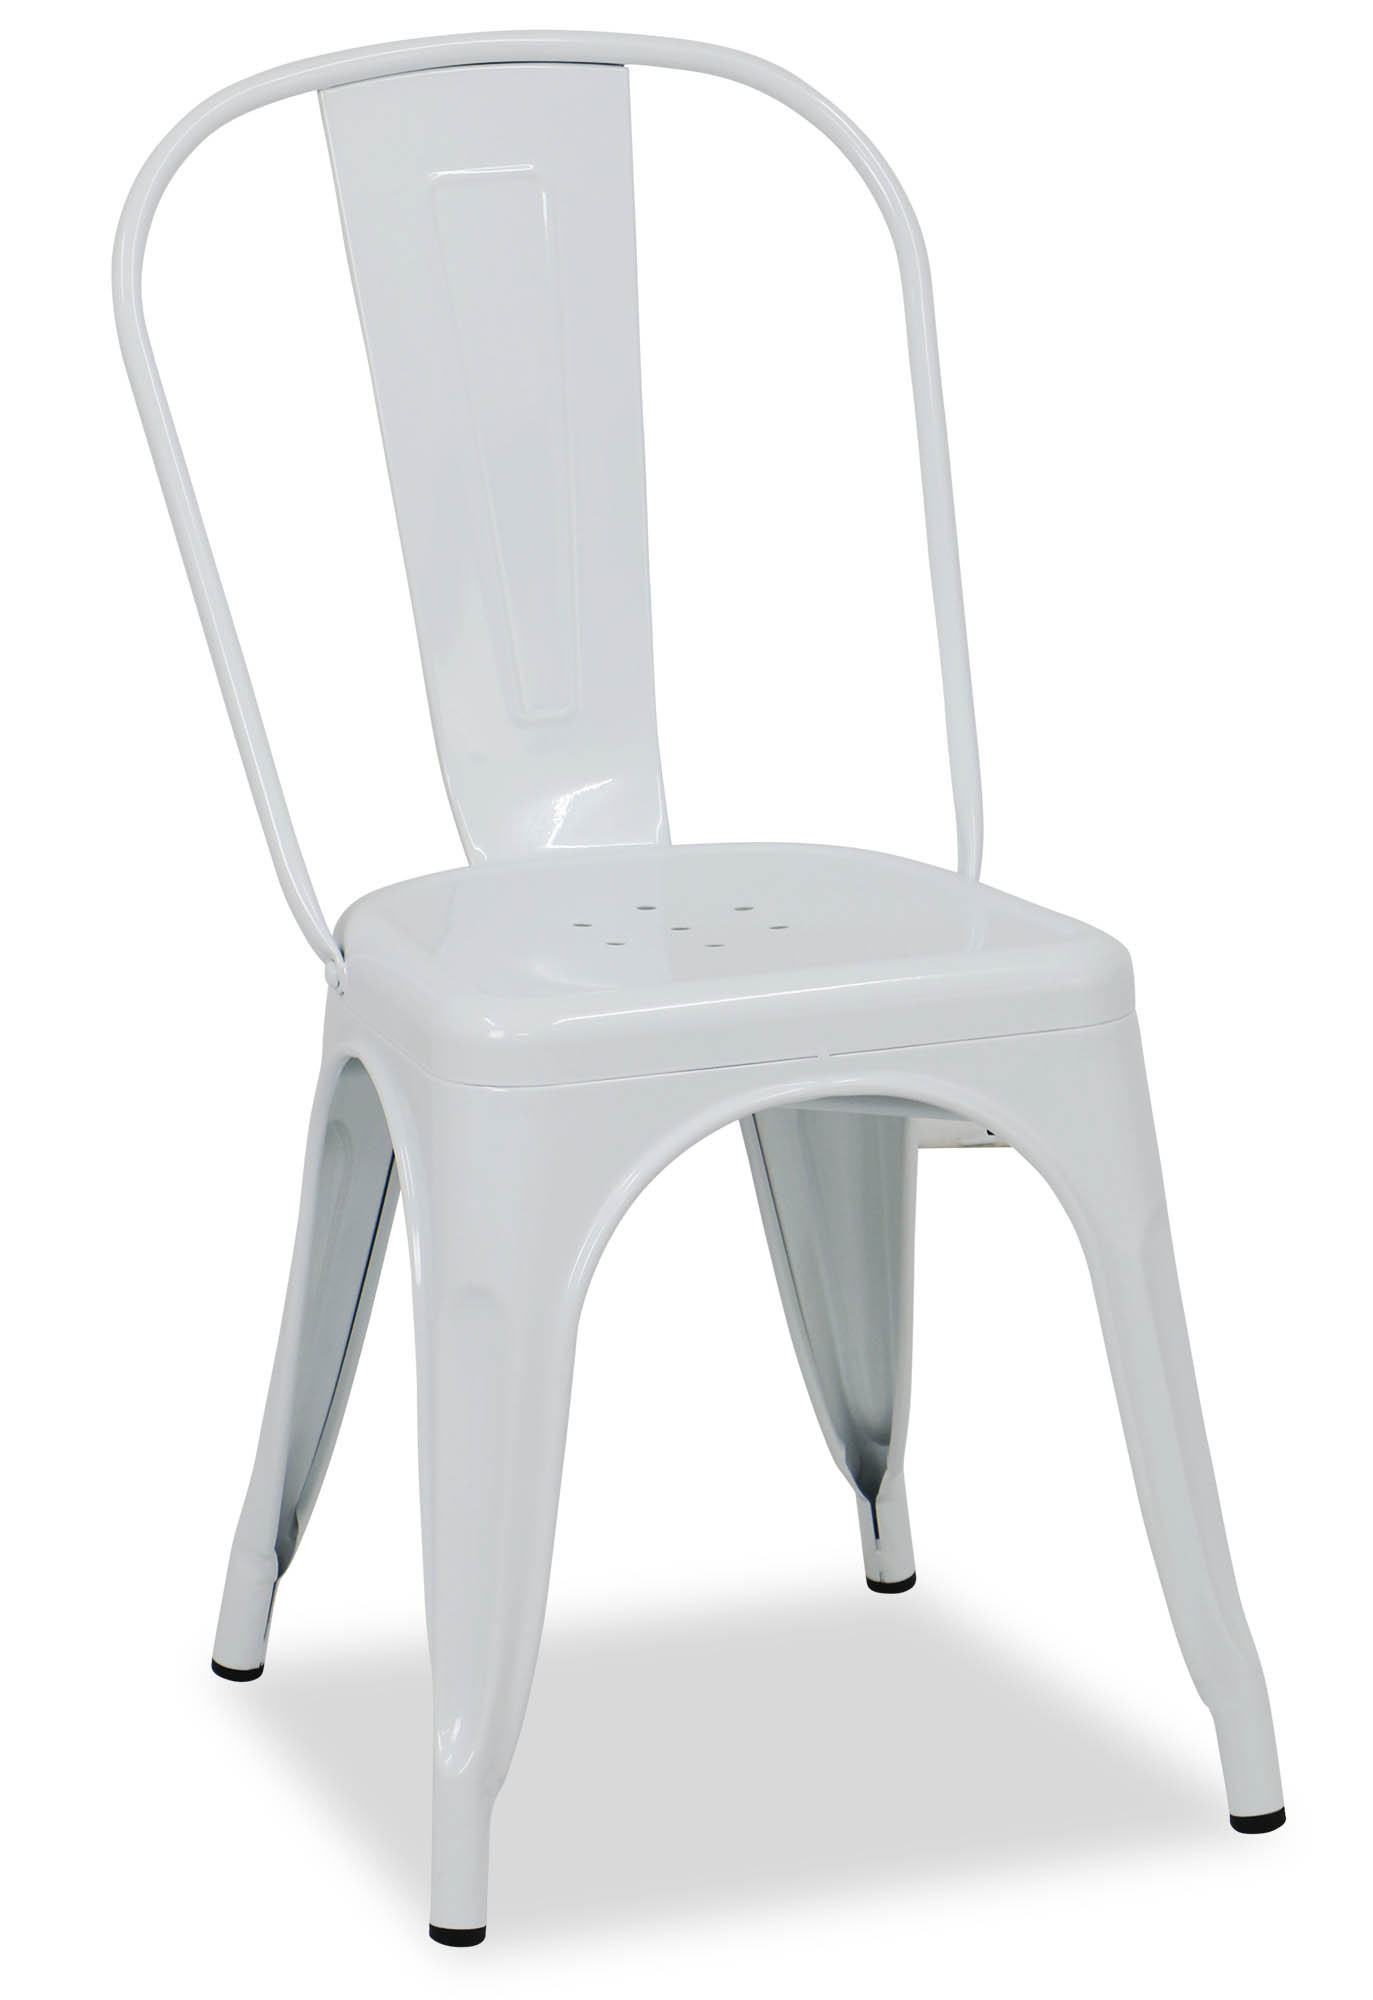 Retro Metal Chair White Dining Chairs Dining Room